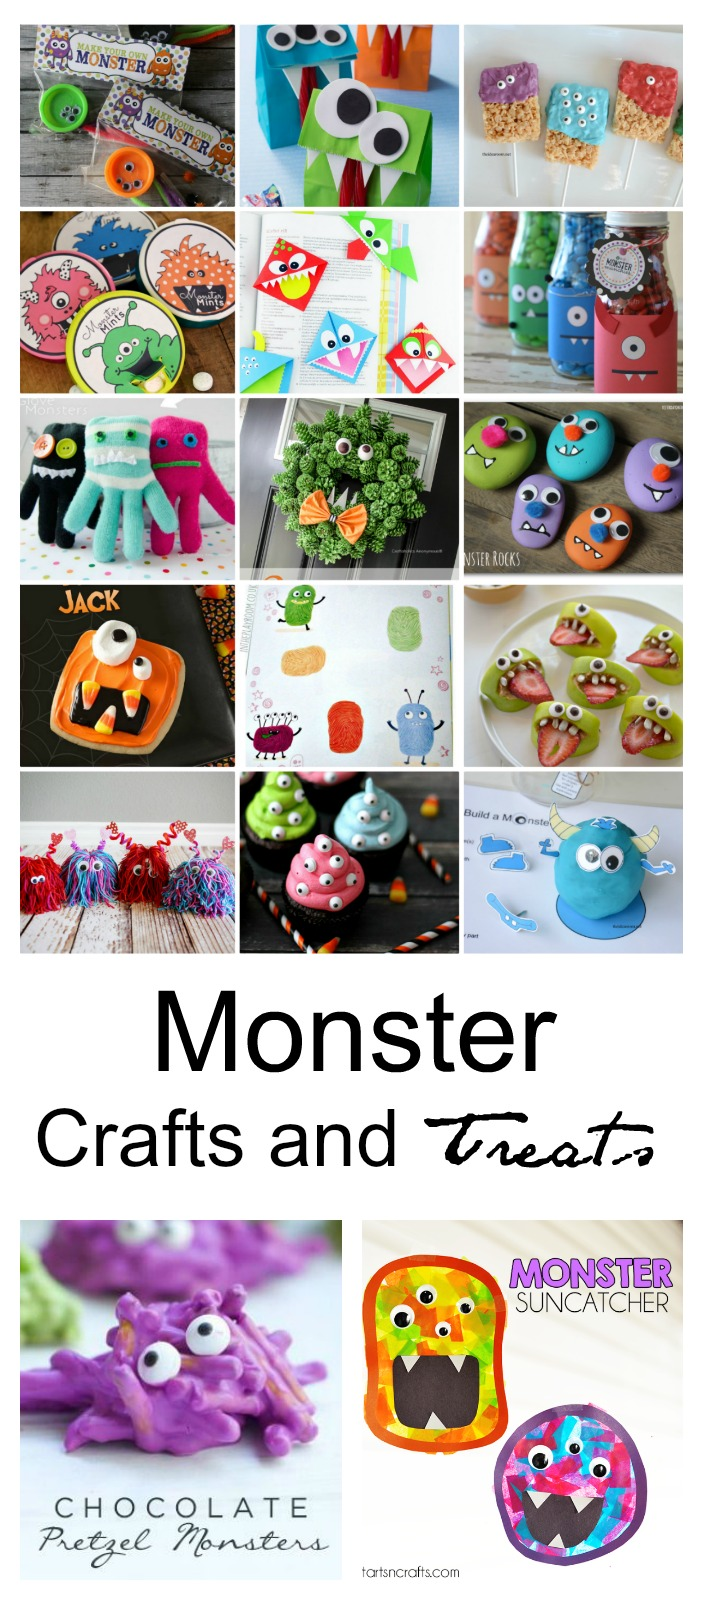 monster-crafts-treats-pin